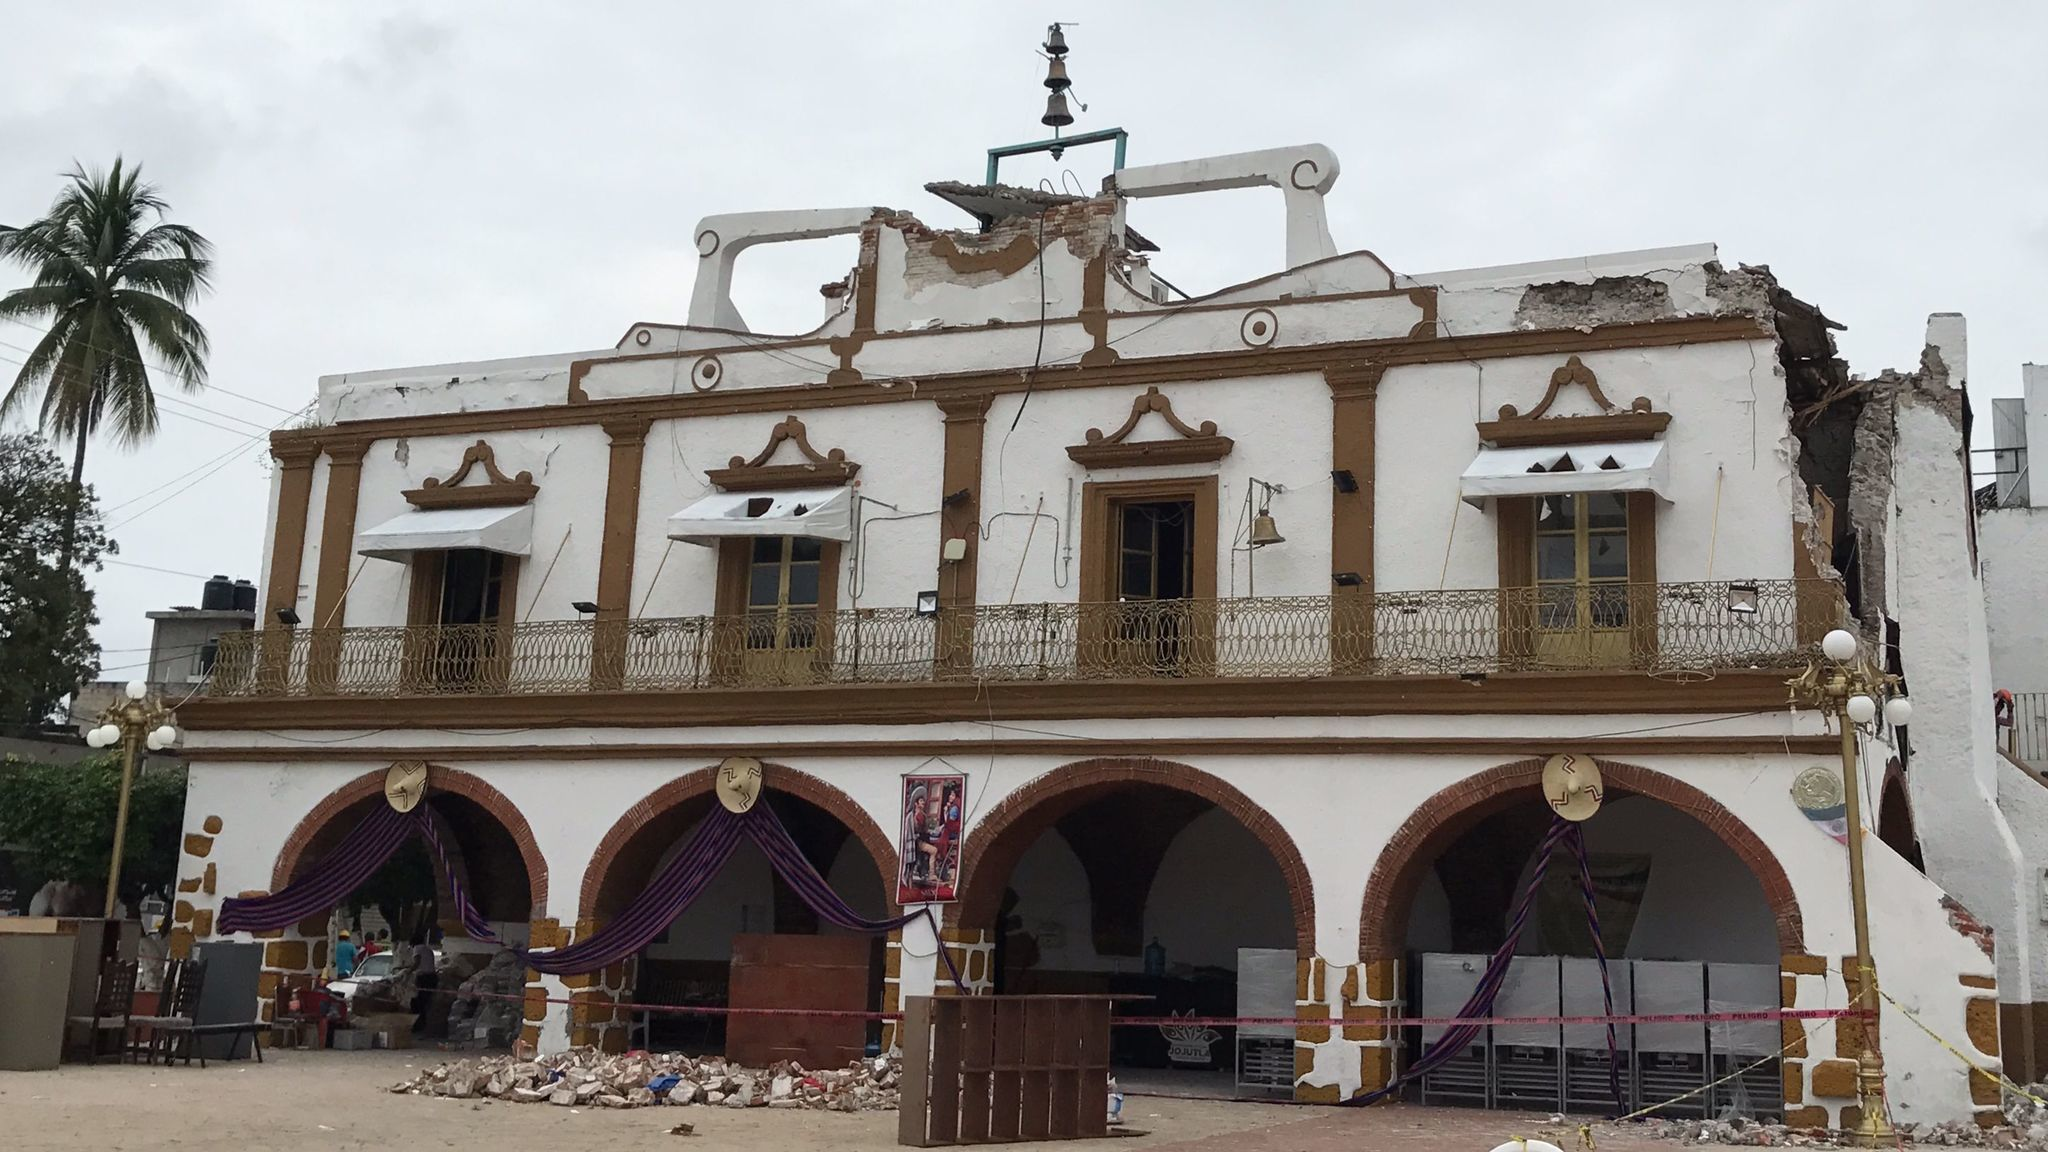 Jojutla town hall on Sept. 28, 2017. The Sept. 19 earthquake caused the clock tower to collapse, sending bricks to tumble on the square below, killing three people as they fled the building.